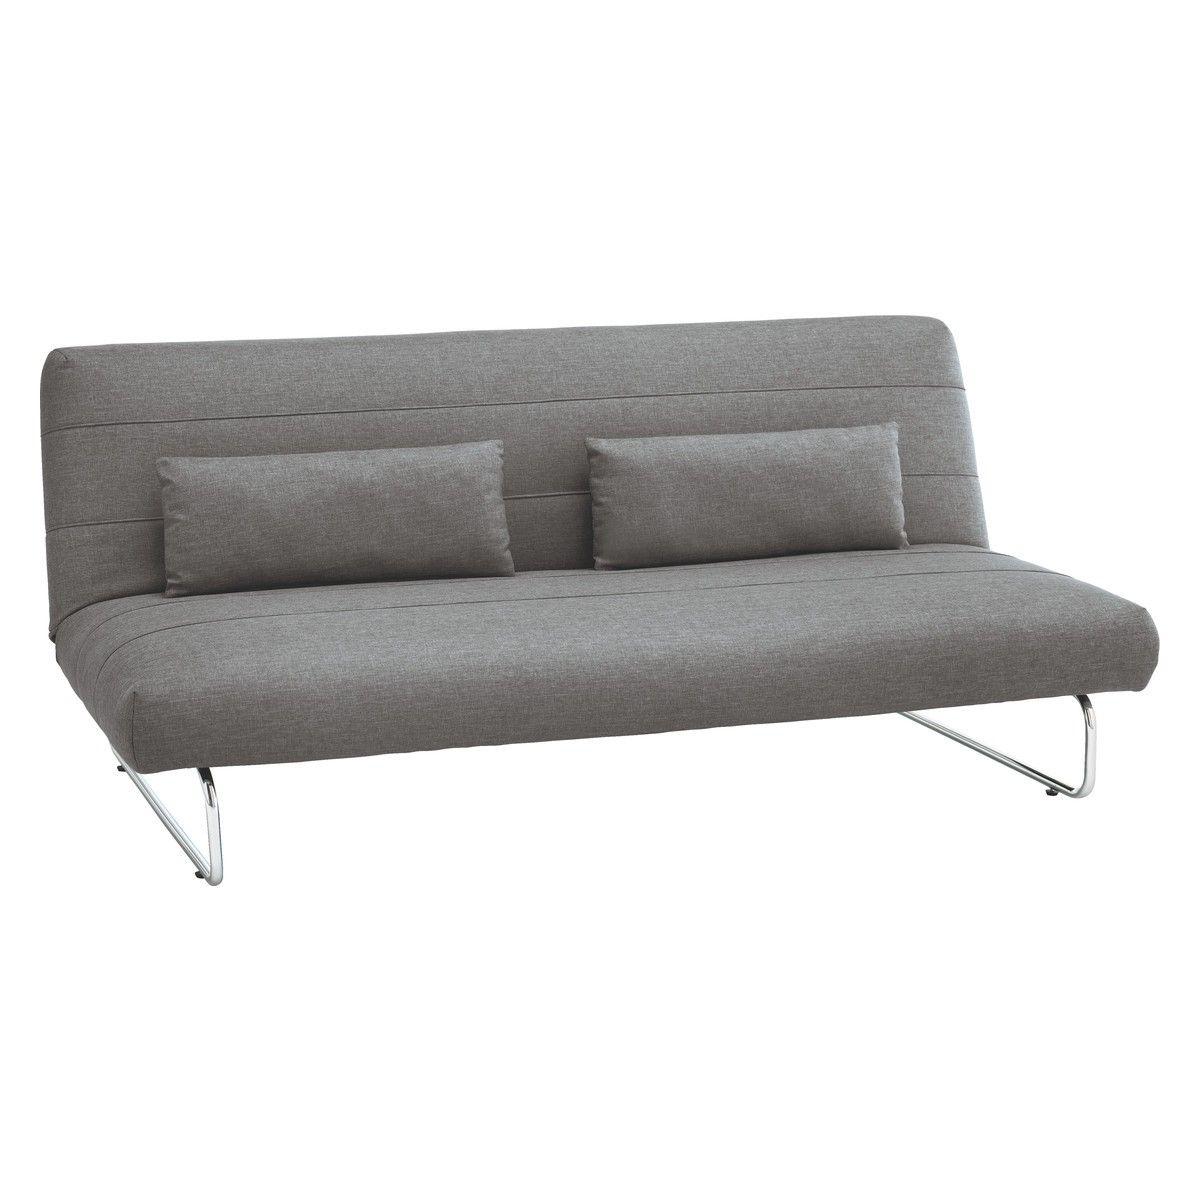 Habitat SIBU Grey fabric 2 seater sofa bed. £225 in sale. Assembled ...